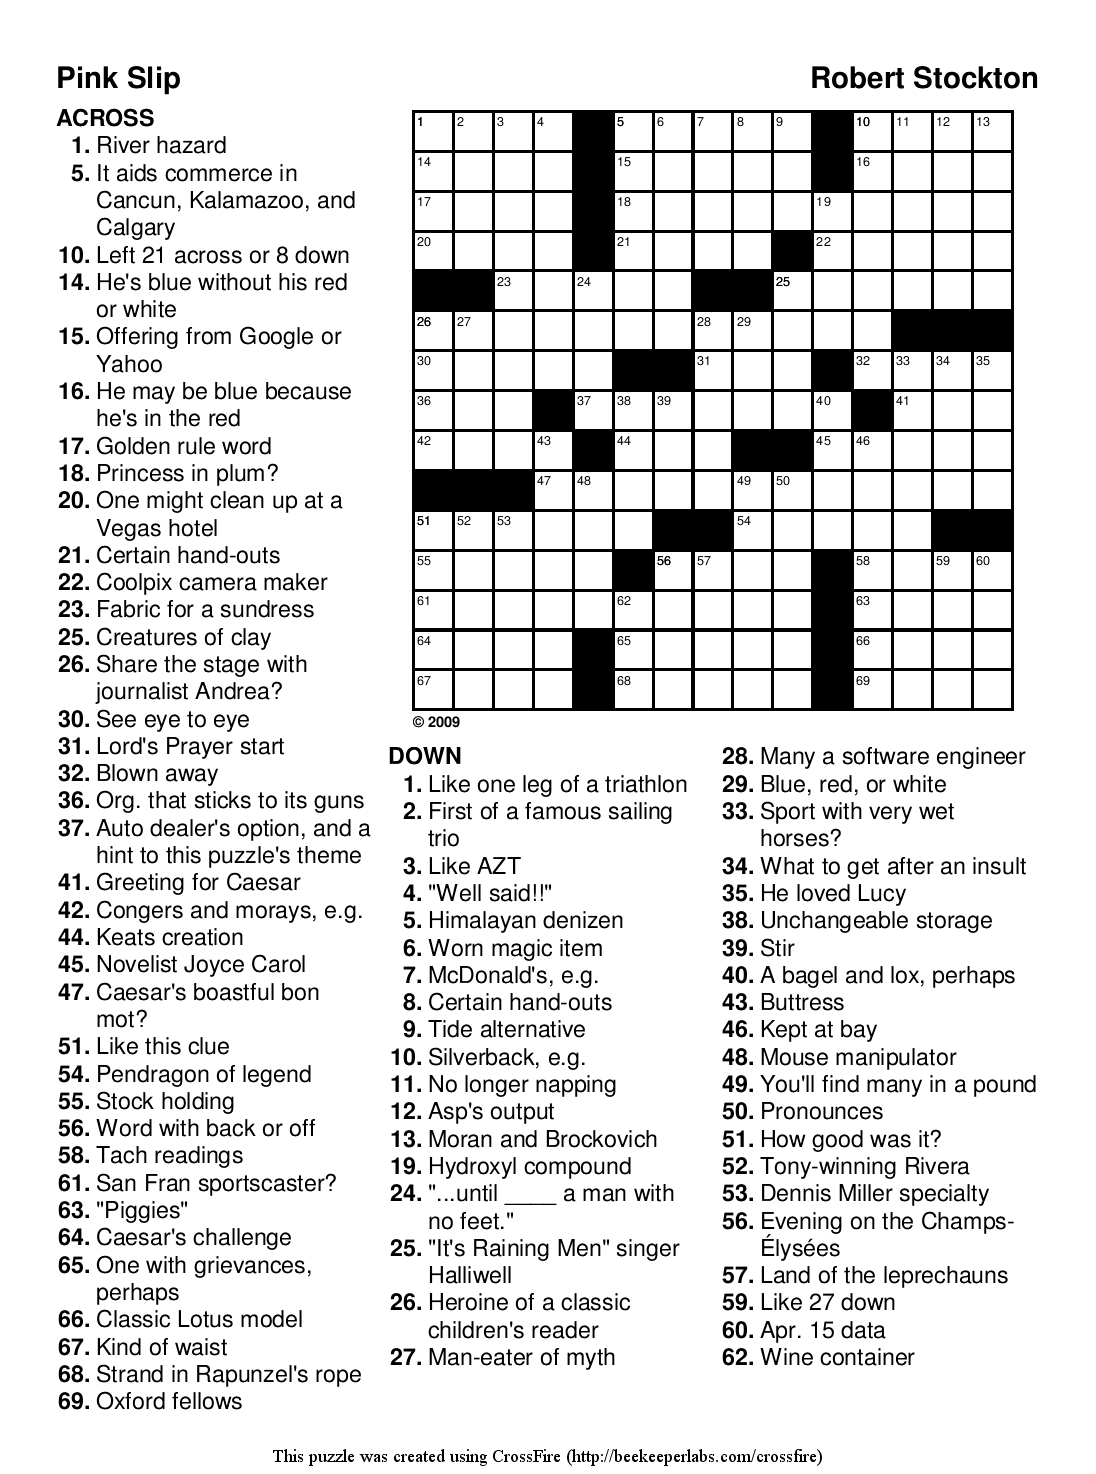 Printable Puzzles For Adults | Easy Word Puzzles Printable Festivals - Printable Crossword Puzzles Easy To Medium